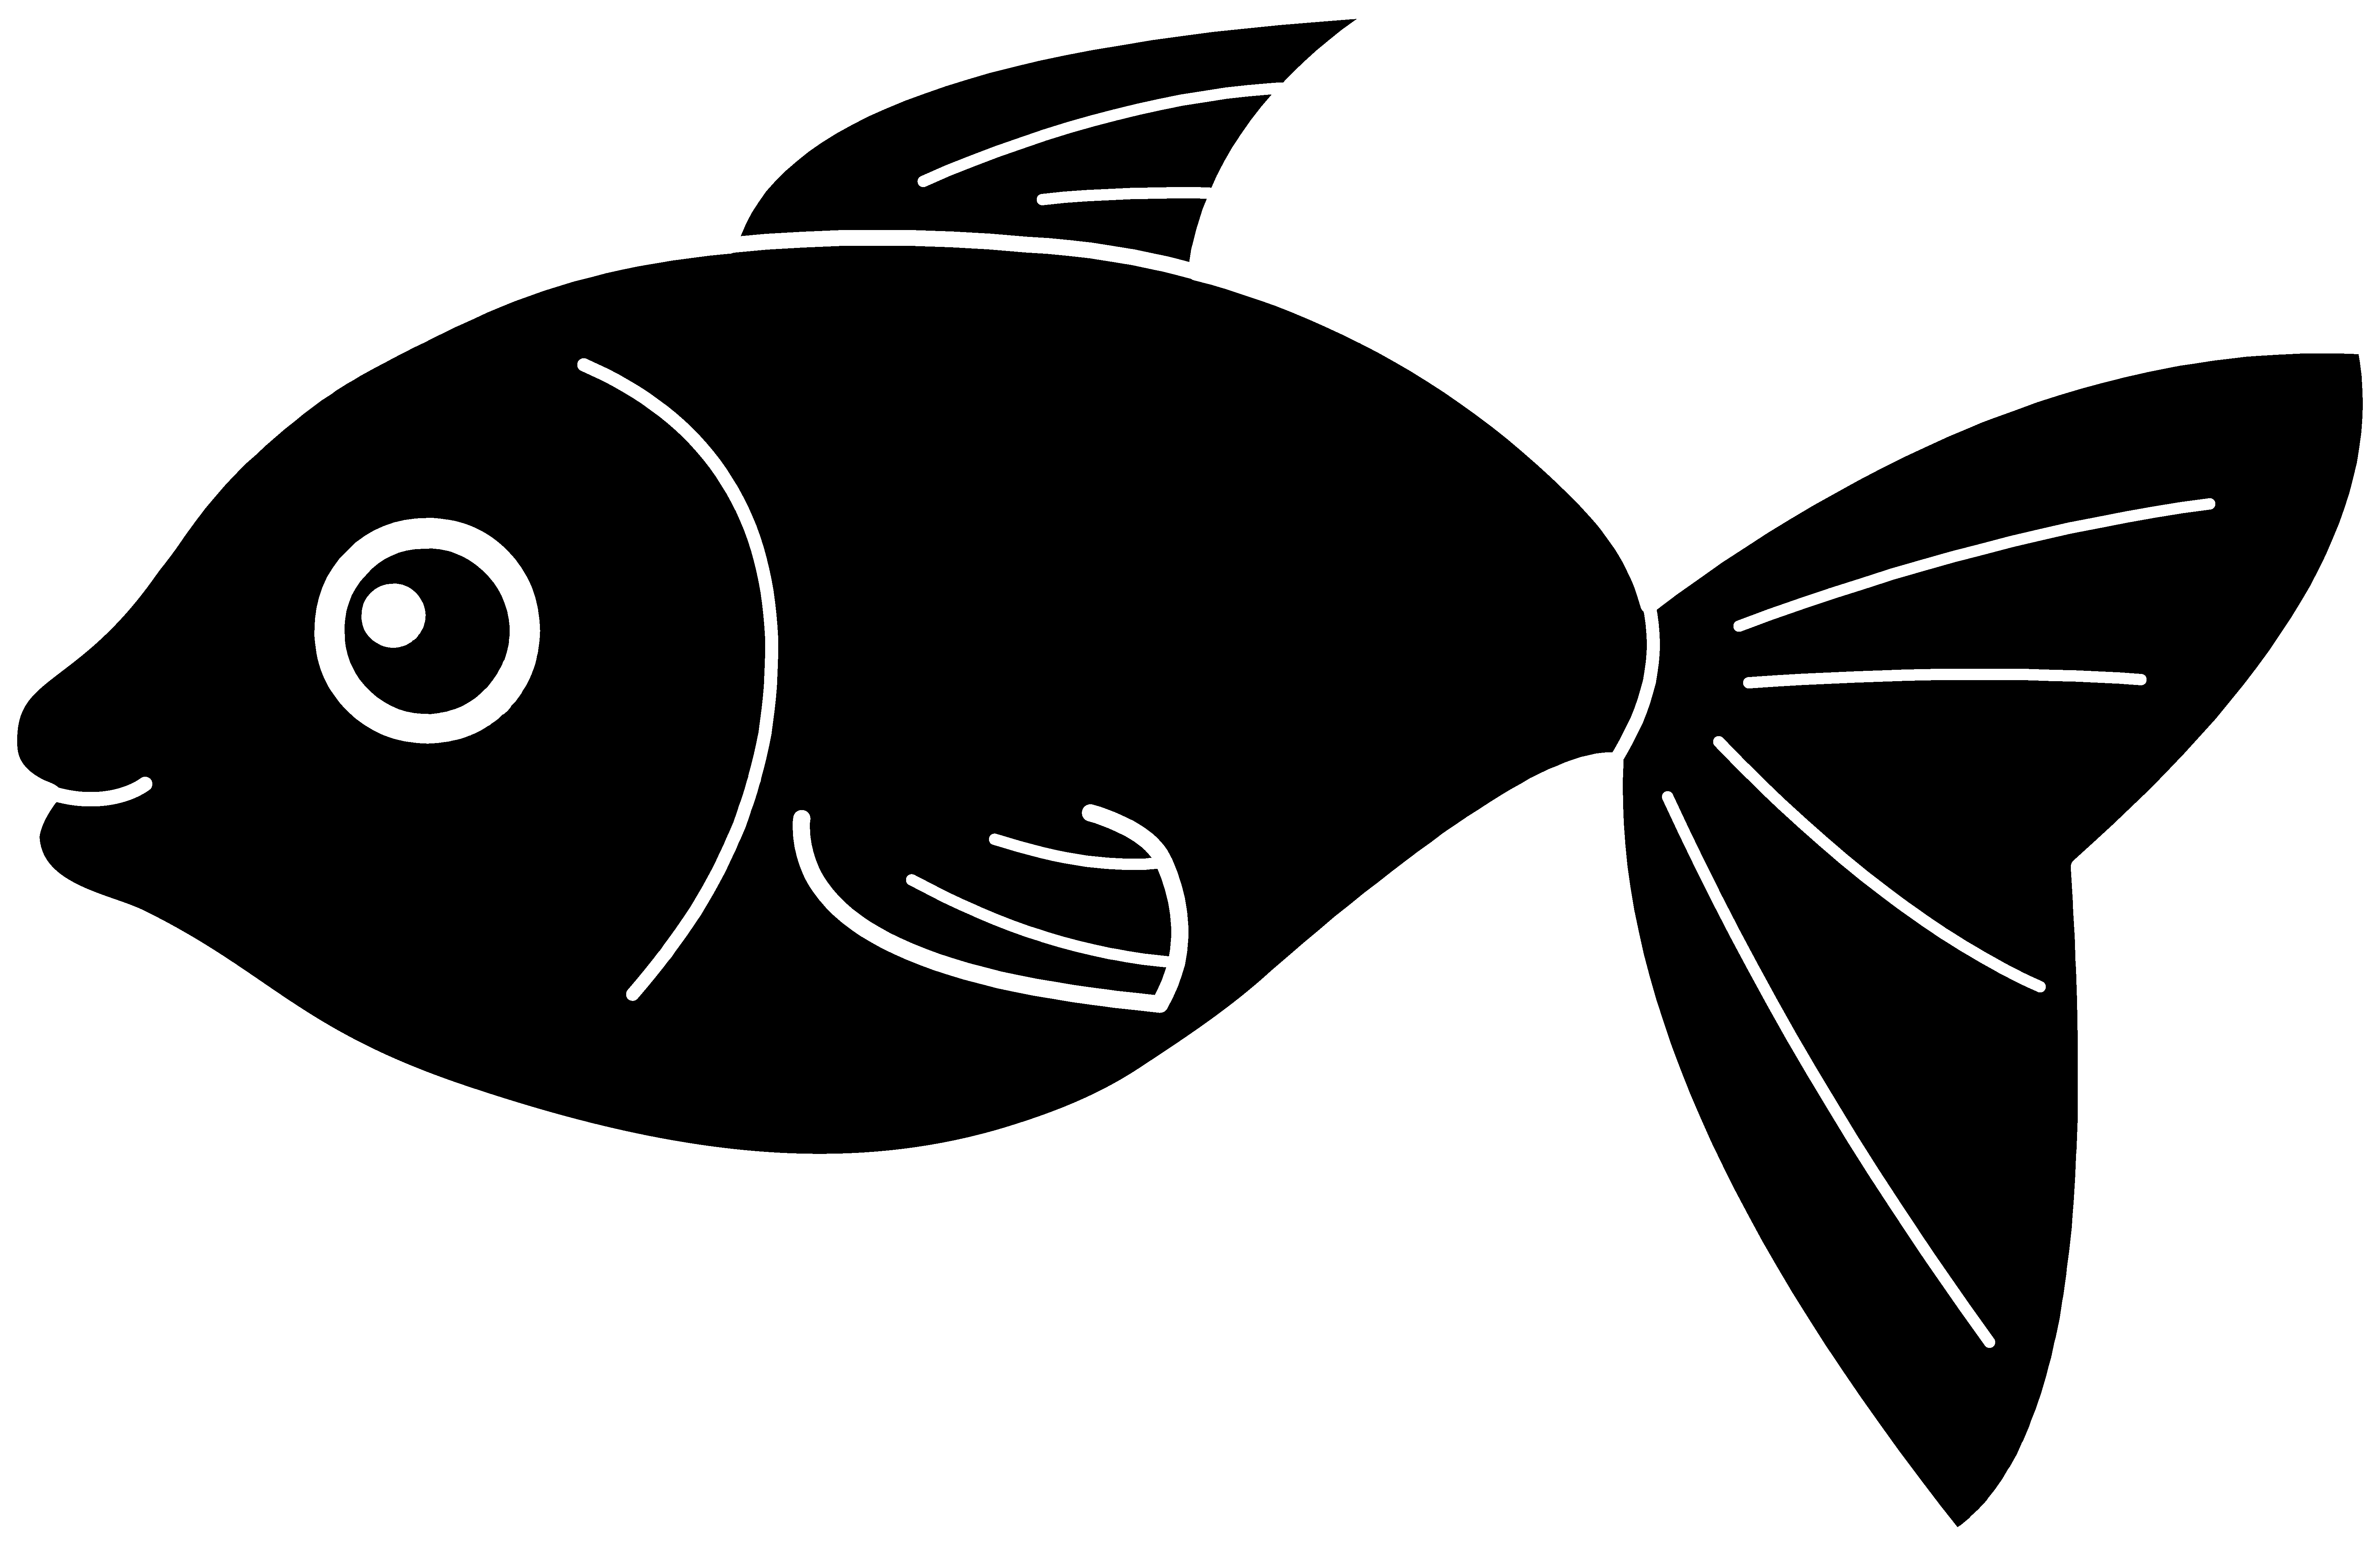 Image of a fish clipart picture library library Fish Clip Art Black and White | Black Fish Silhouette | pattern ... picture library library